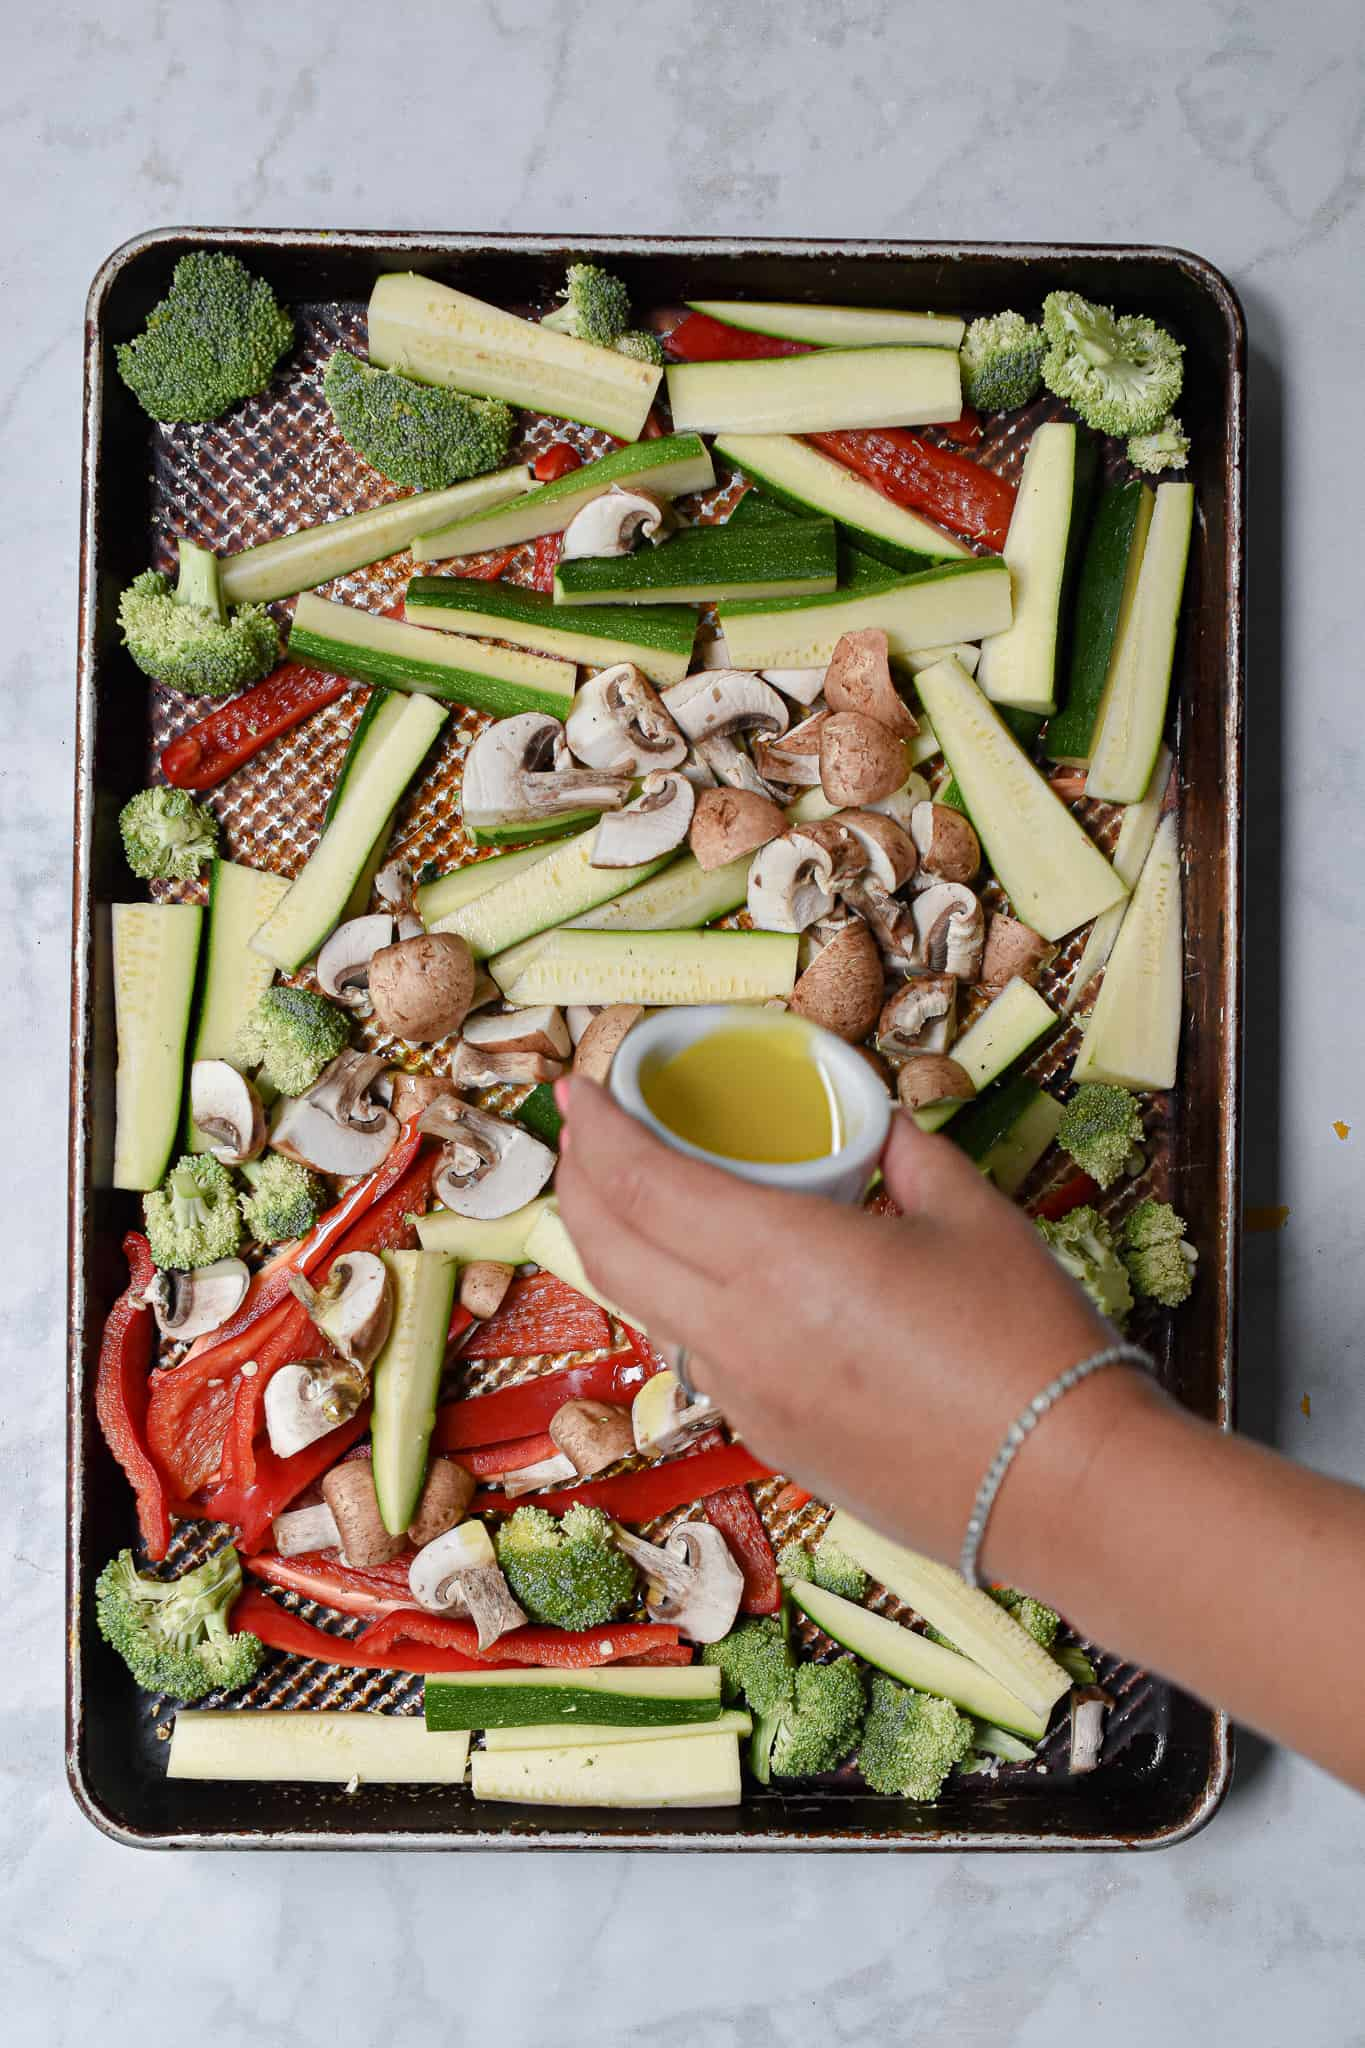 The olive oil is being poured over the cut up vegetables